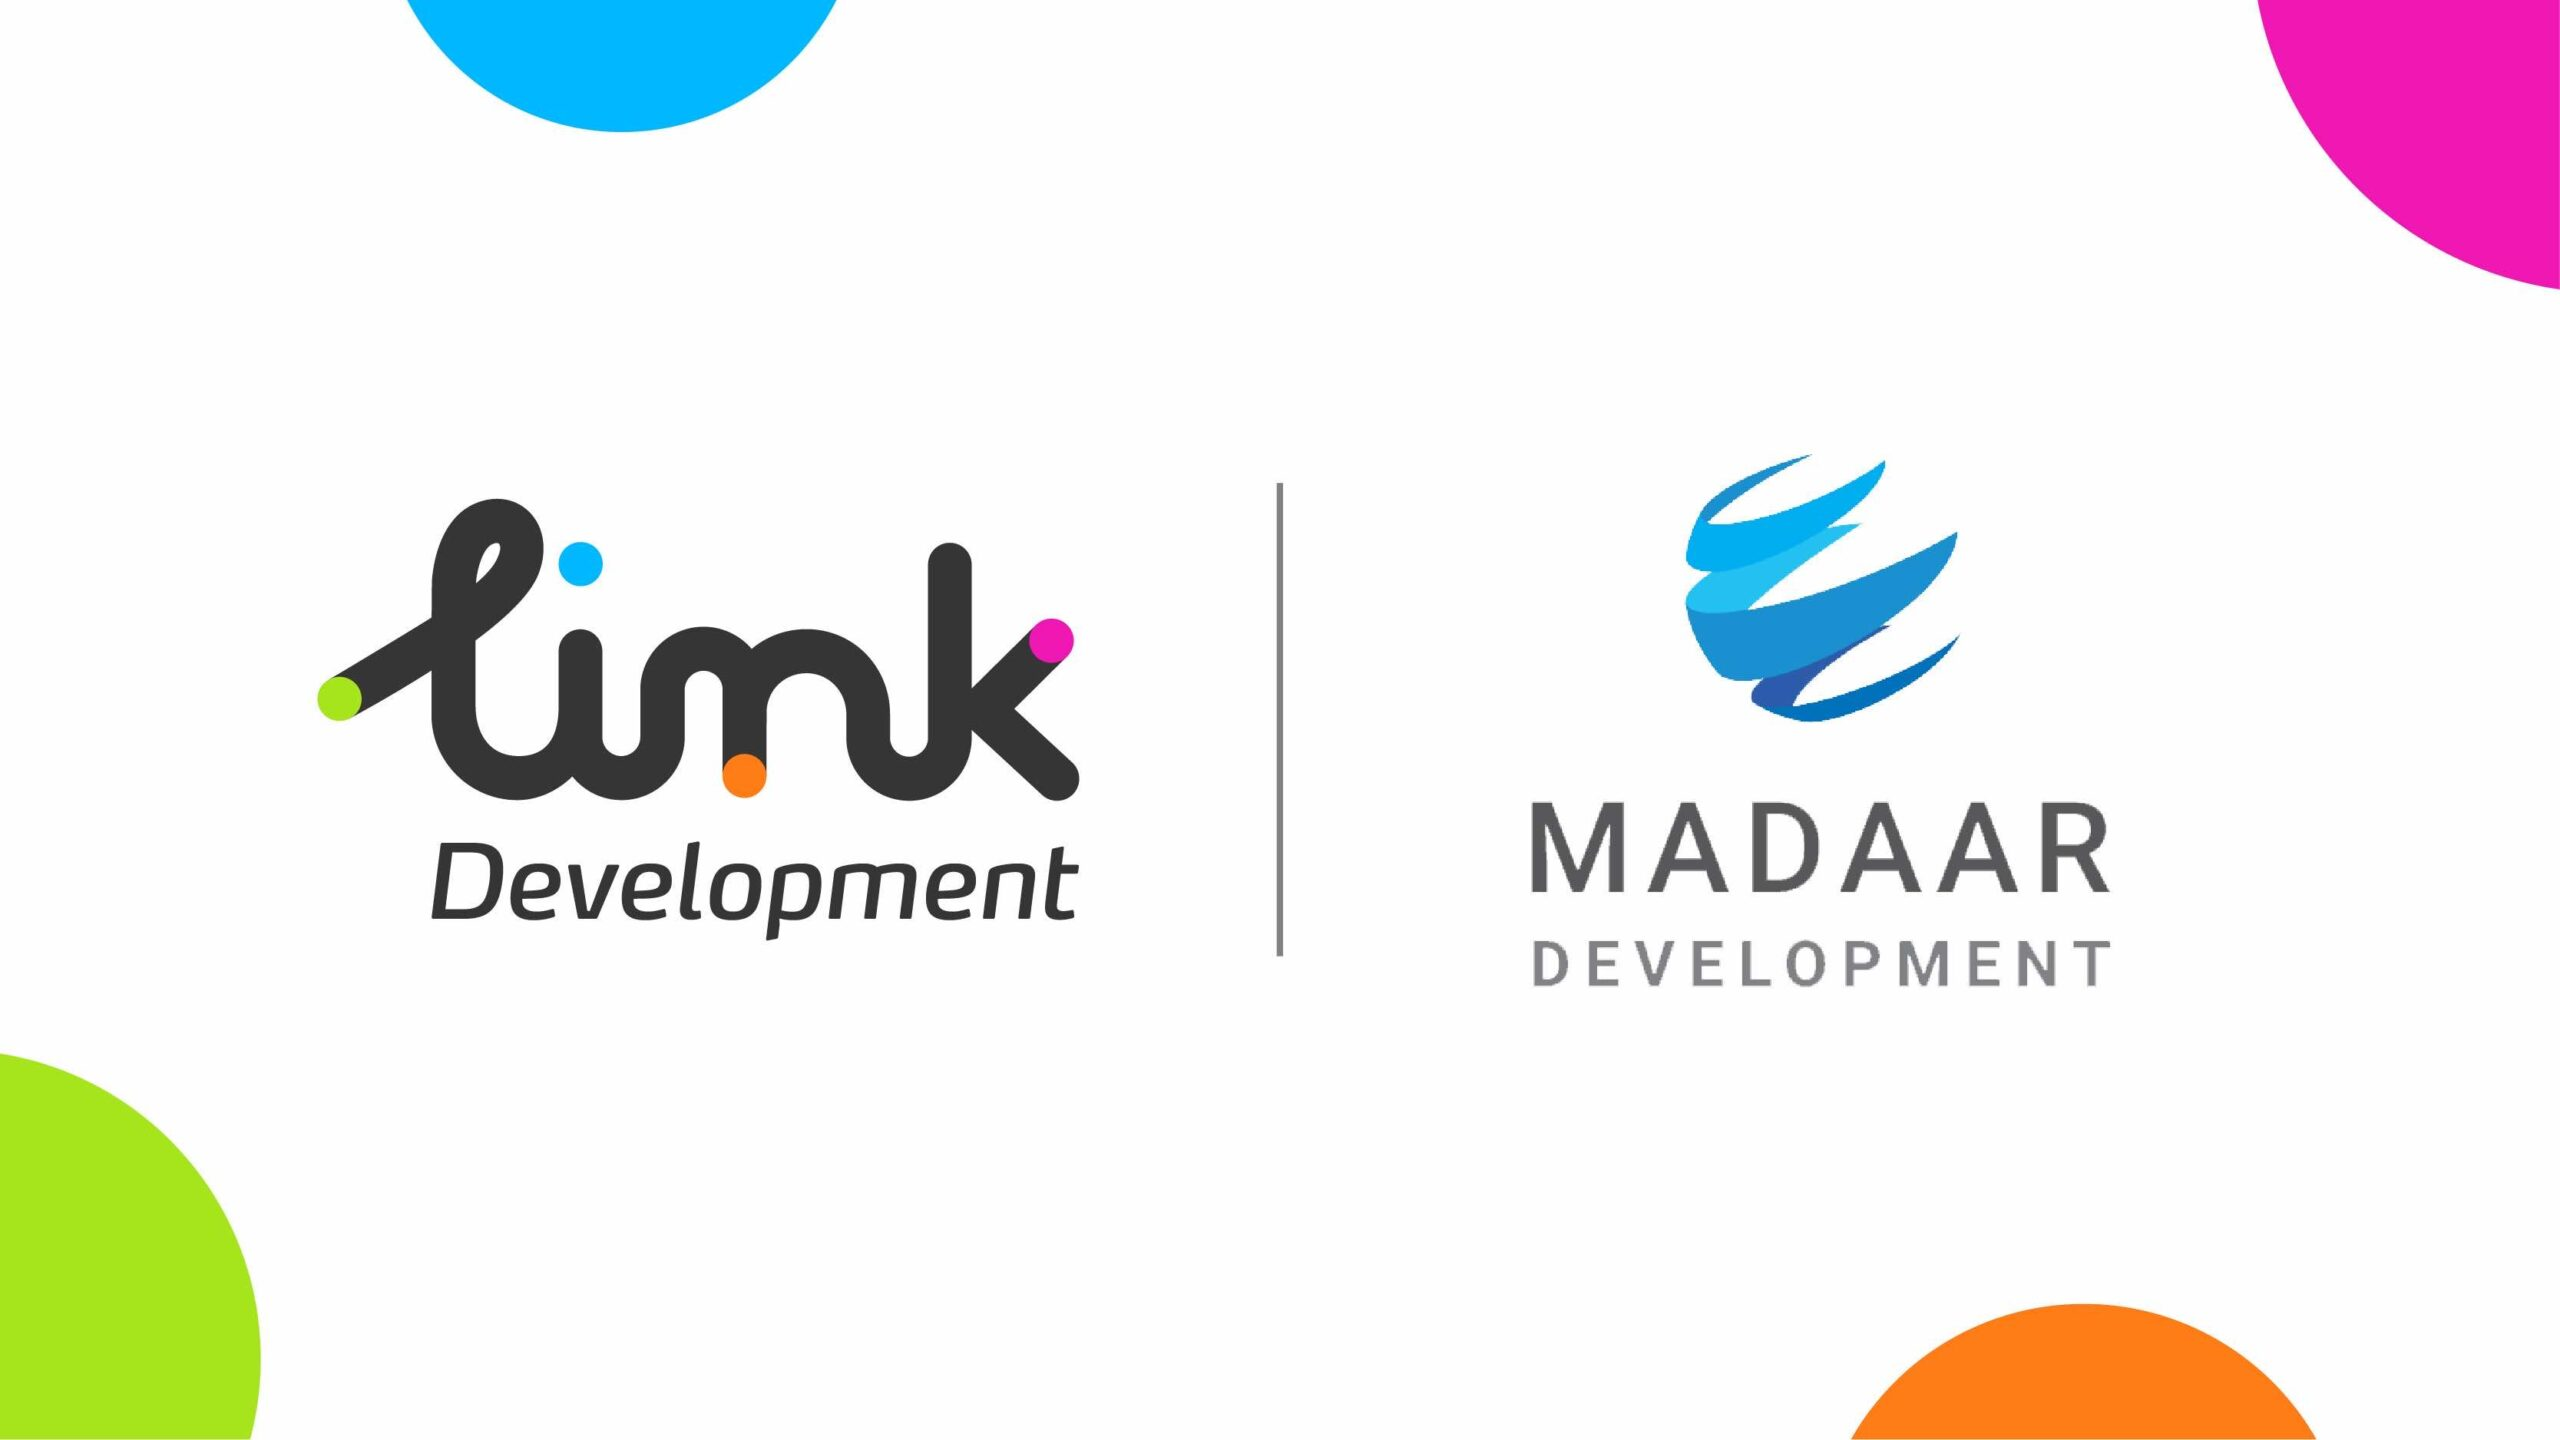 Link Development Digitalizes Madaar Development Operations In Egypt